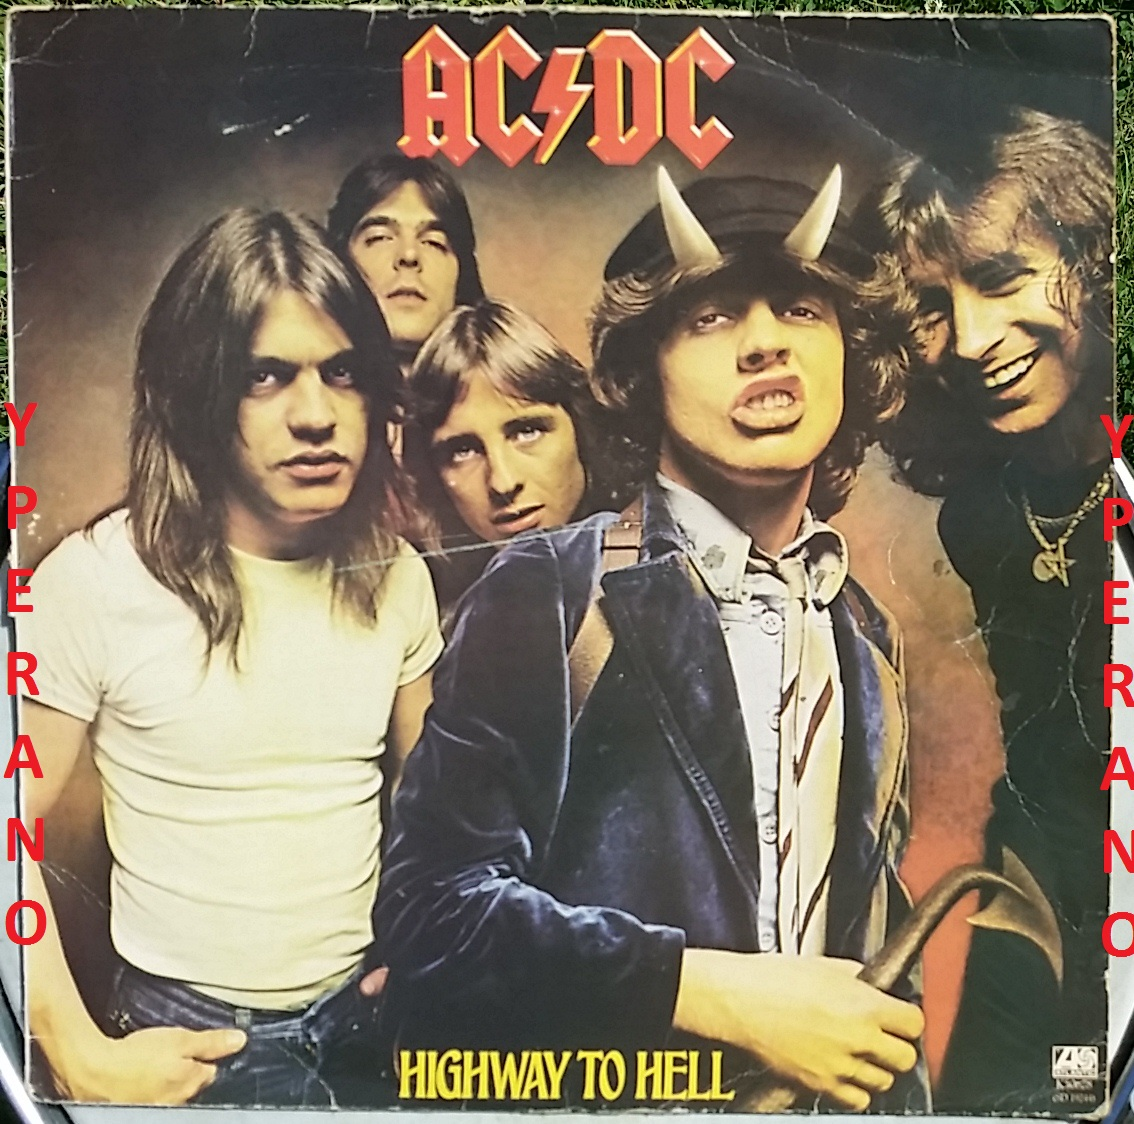 ACDC: Highway to hell LP original 1st press 1979 UK. Check ...